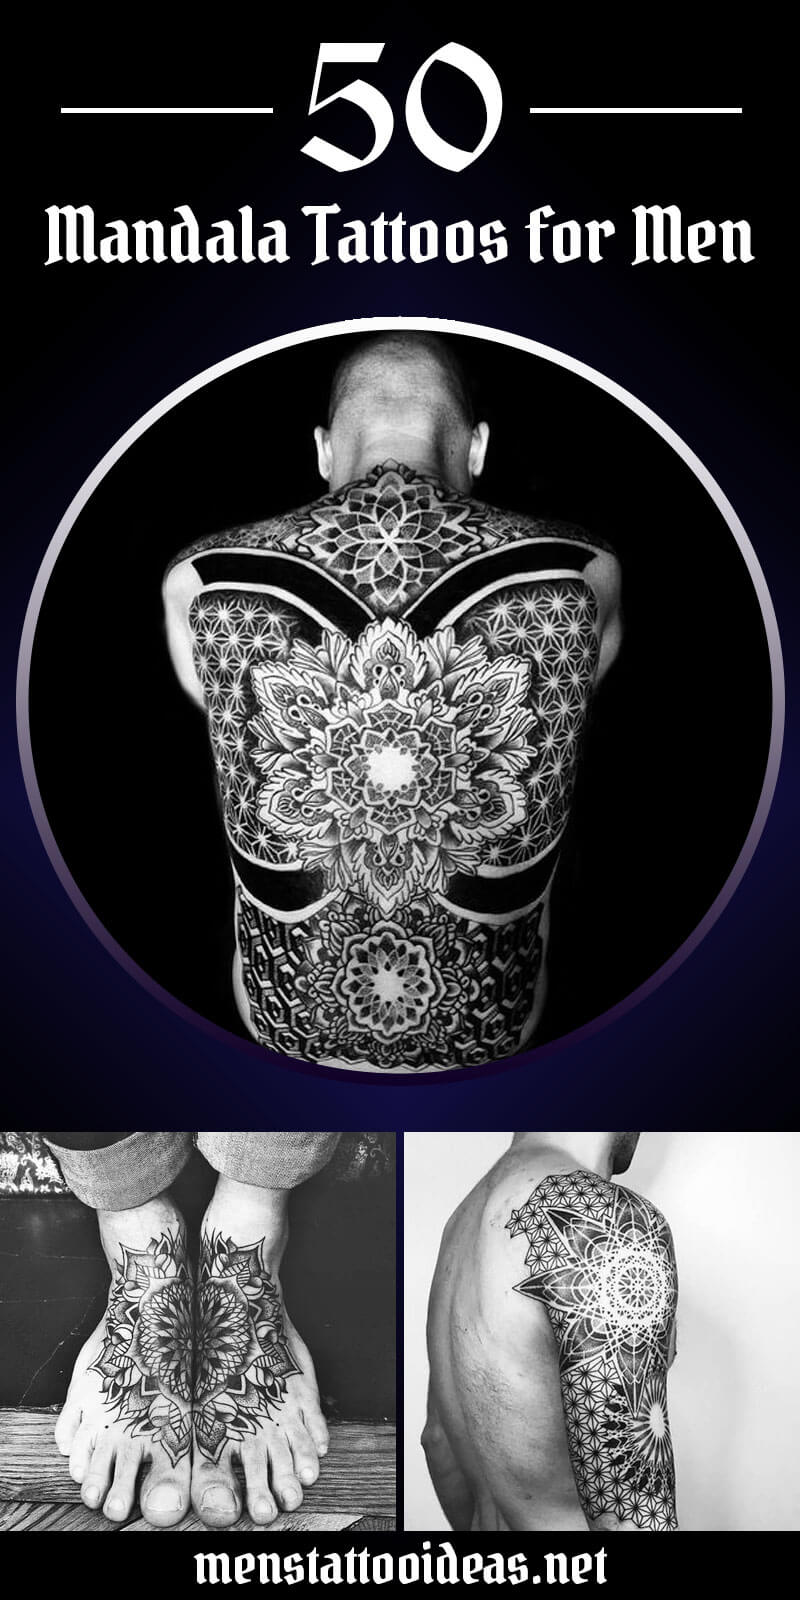 mandala-tattoos-for-men